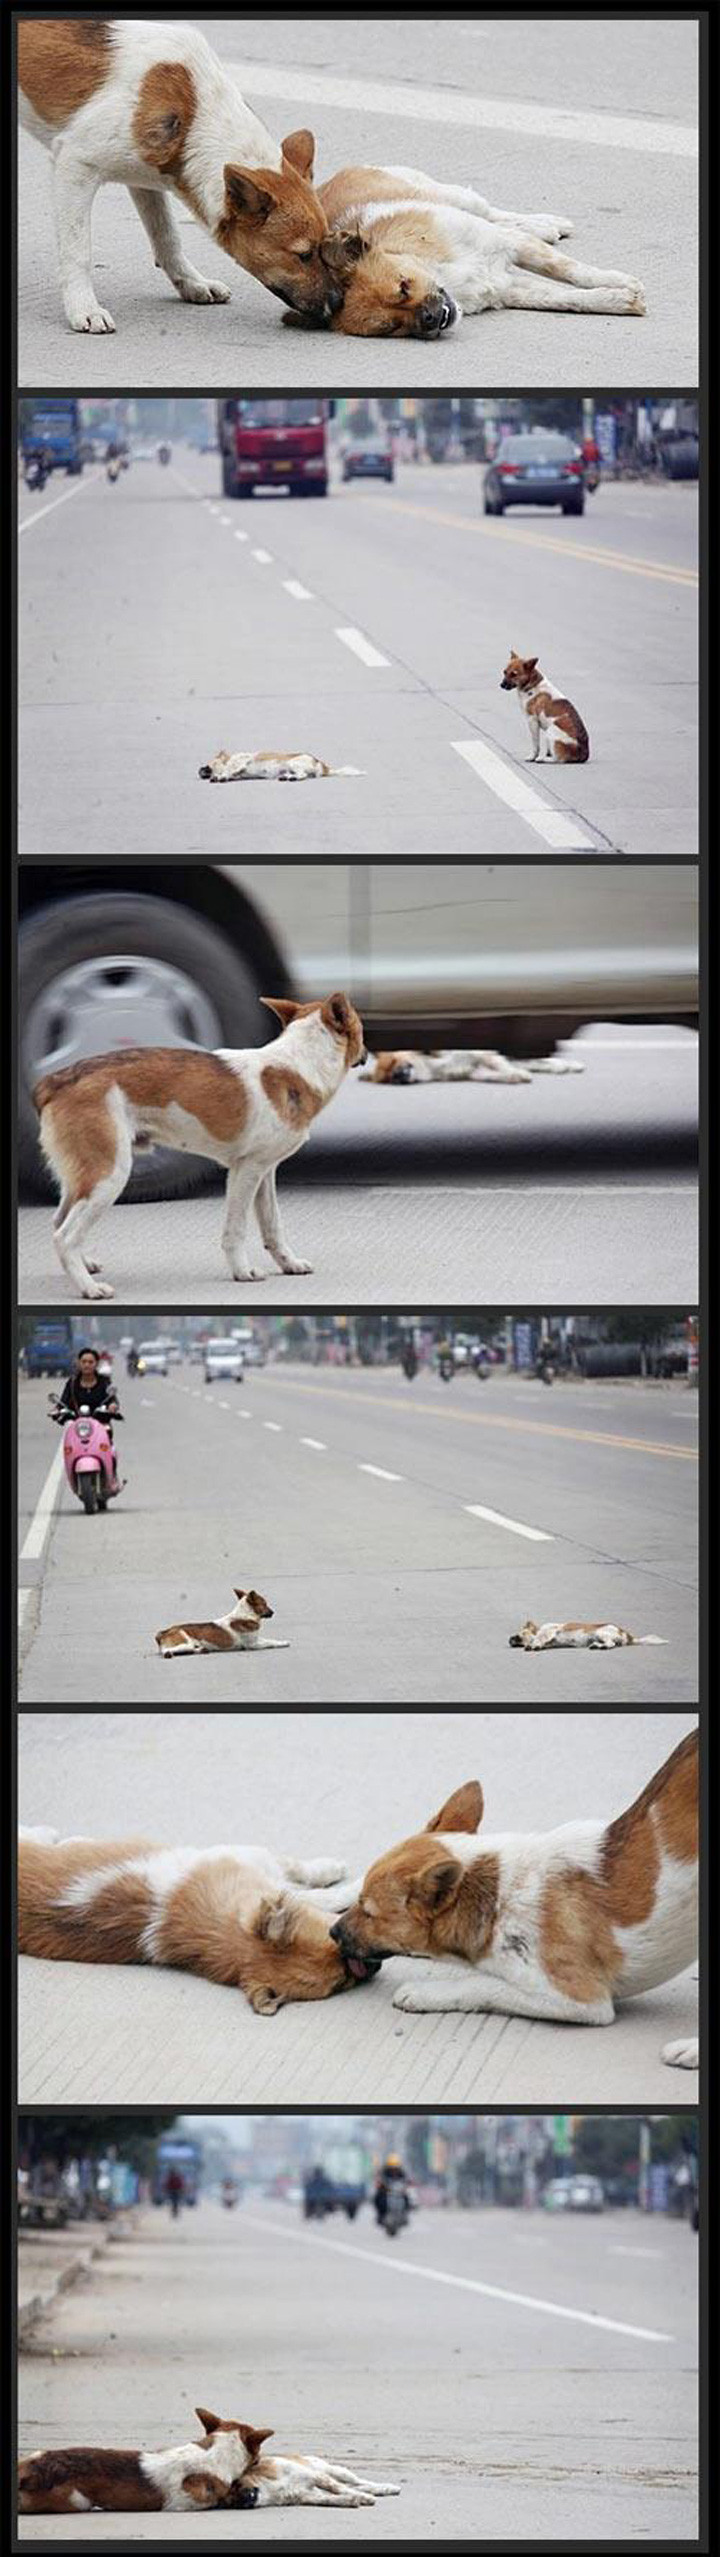 Dogs Have Emotions and This Tragic Photo Just Broke My Heart.